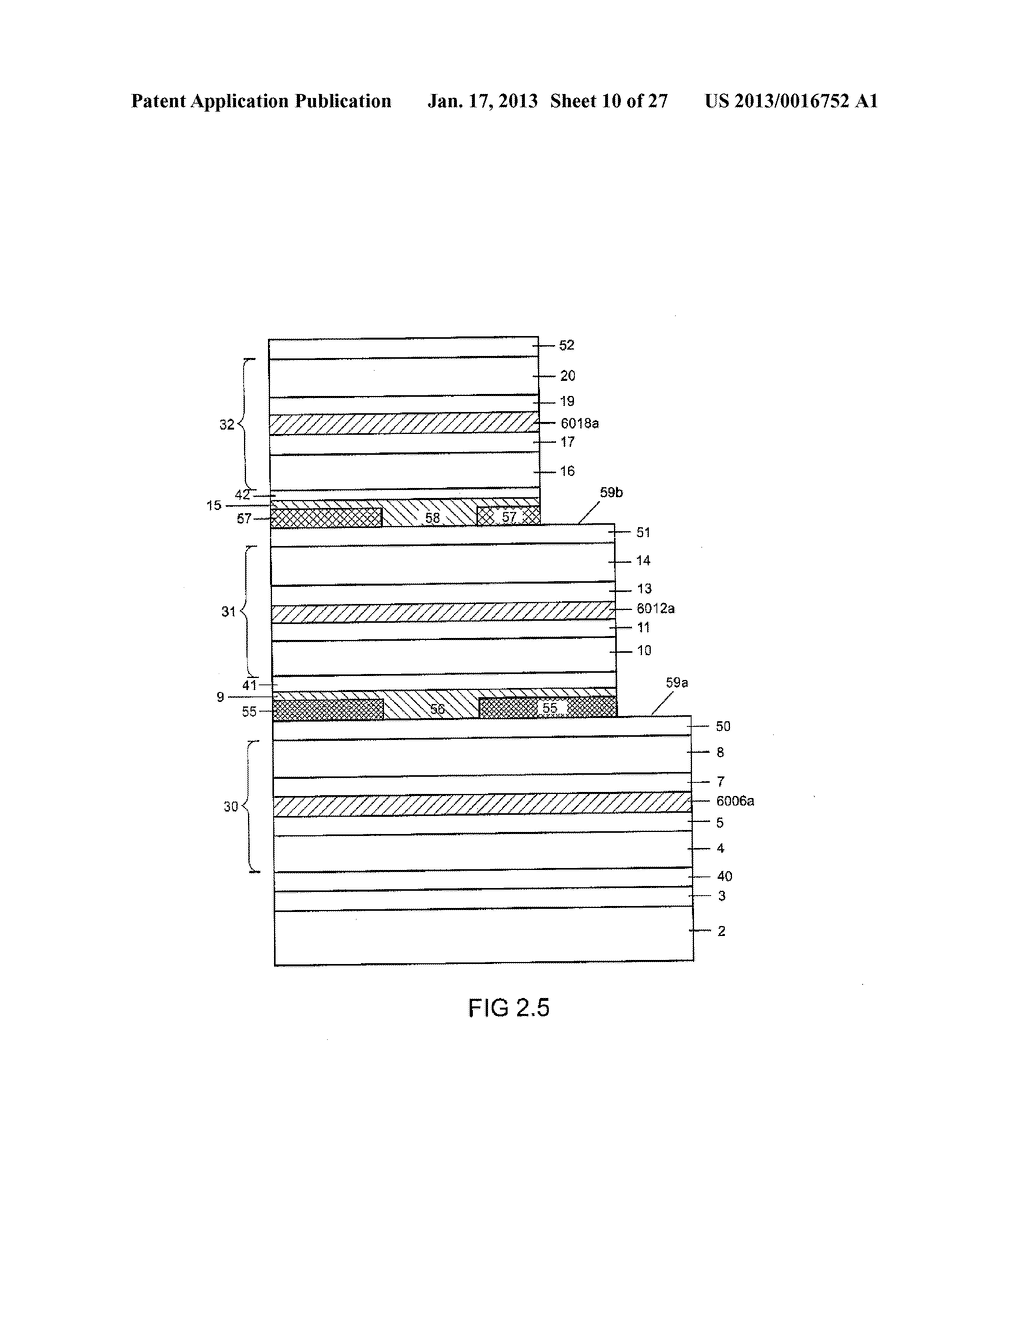 Laser Diode Assembly and Method for Producing a Laser Diode AssemblyAANM Lell; AlfredAACI Maxhutte-HaidhofAACO DEAAGP Lell; Alfred Maxhutte-Haidhof DEAANM Straussburg; MartinAACI DonaustaufAACO DEAAGP Straussburg; Martin Donaustauf DE - diagram, schematic, and image 11